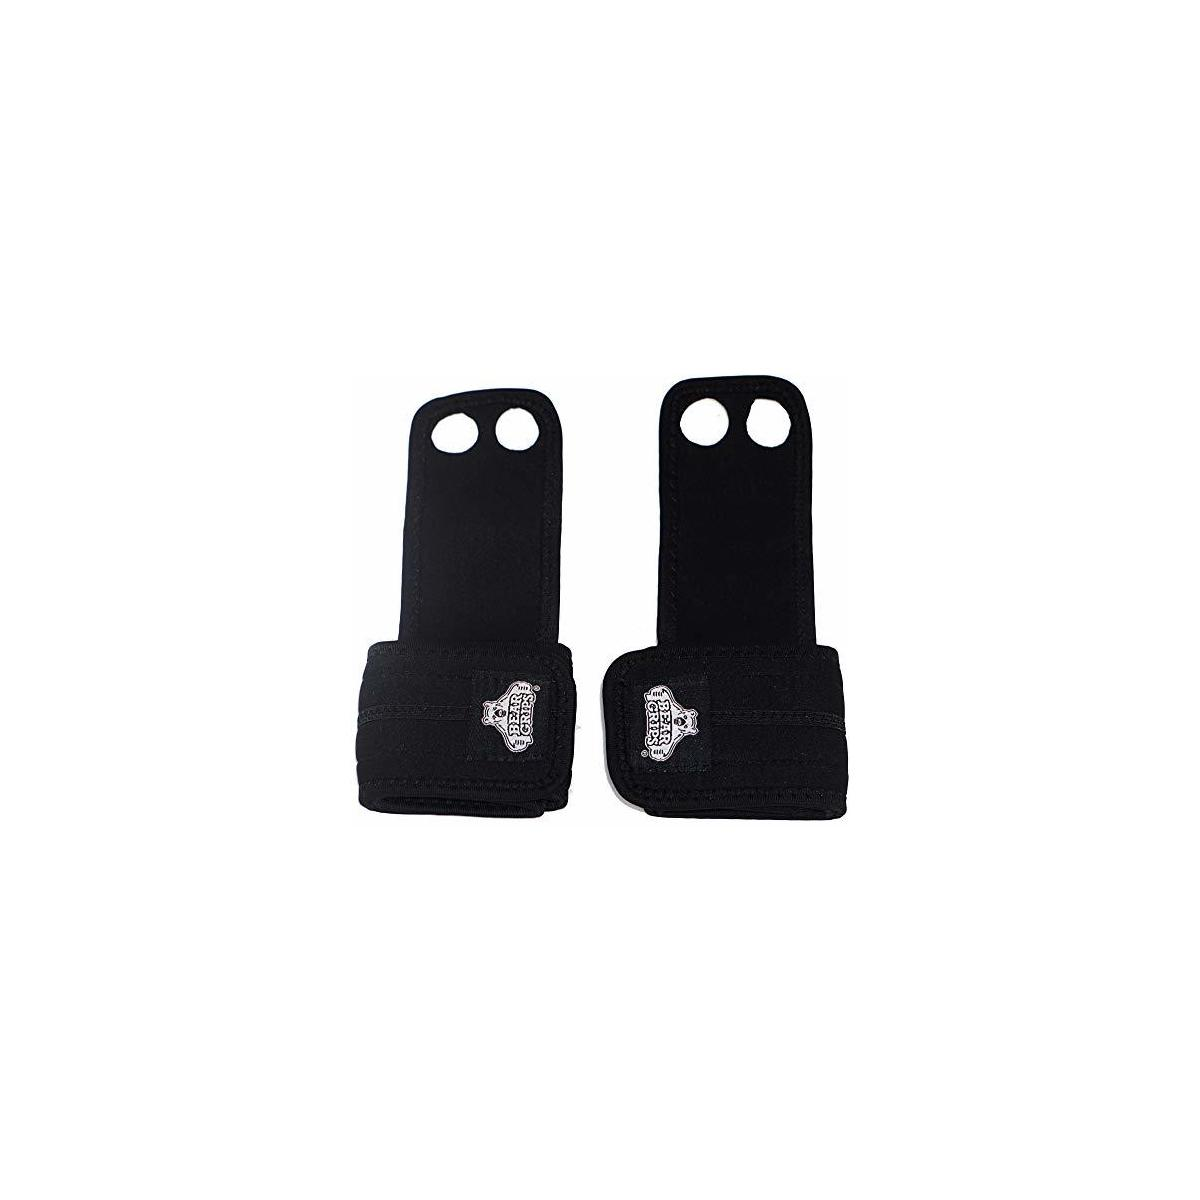 Bear Grips Two Hole Gymnastics Hand Grips. W/Added Wrist Protection, Suede Leather Palm, Ideal for Crossfit WOD, Pull ups, T2B, Rings, Barbell Lifting. Men & Women. Color Black. Size XS-XL